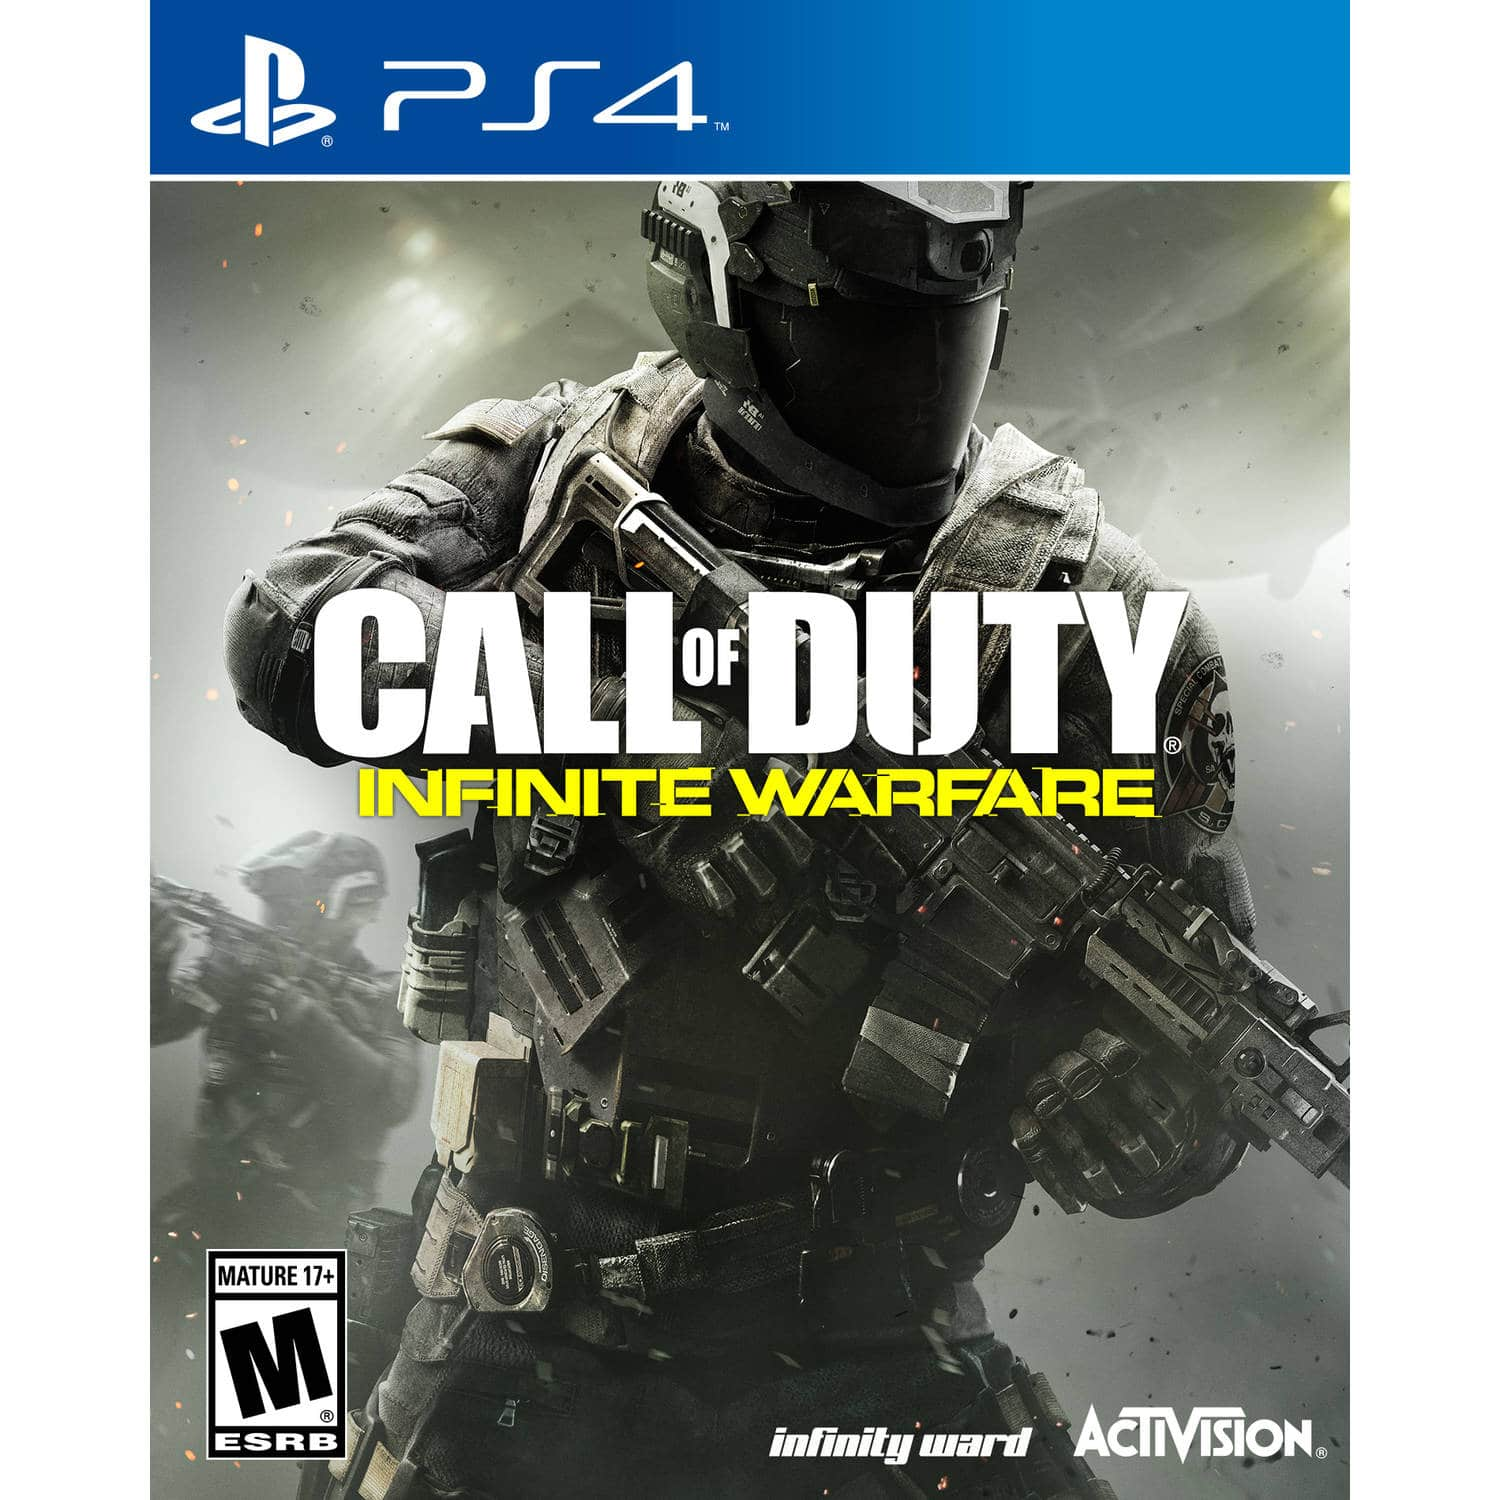 Call of Duty Infinite Warfare (PS4/XB1) - $3.00 (YMMV)